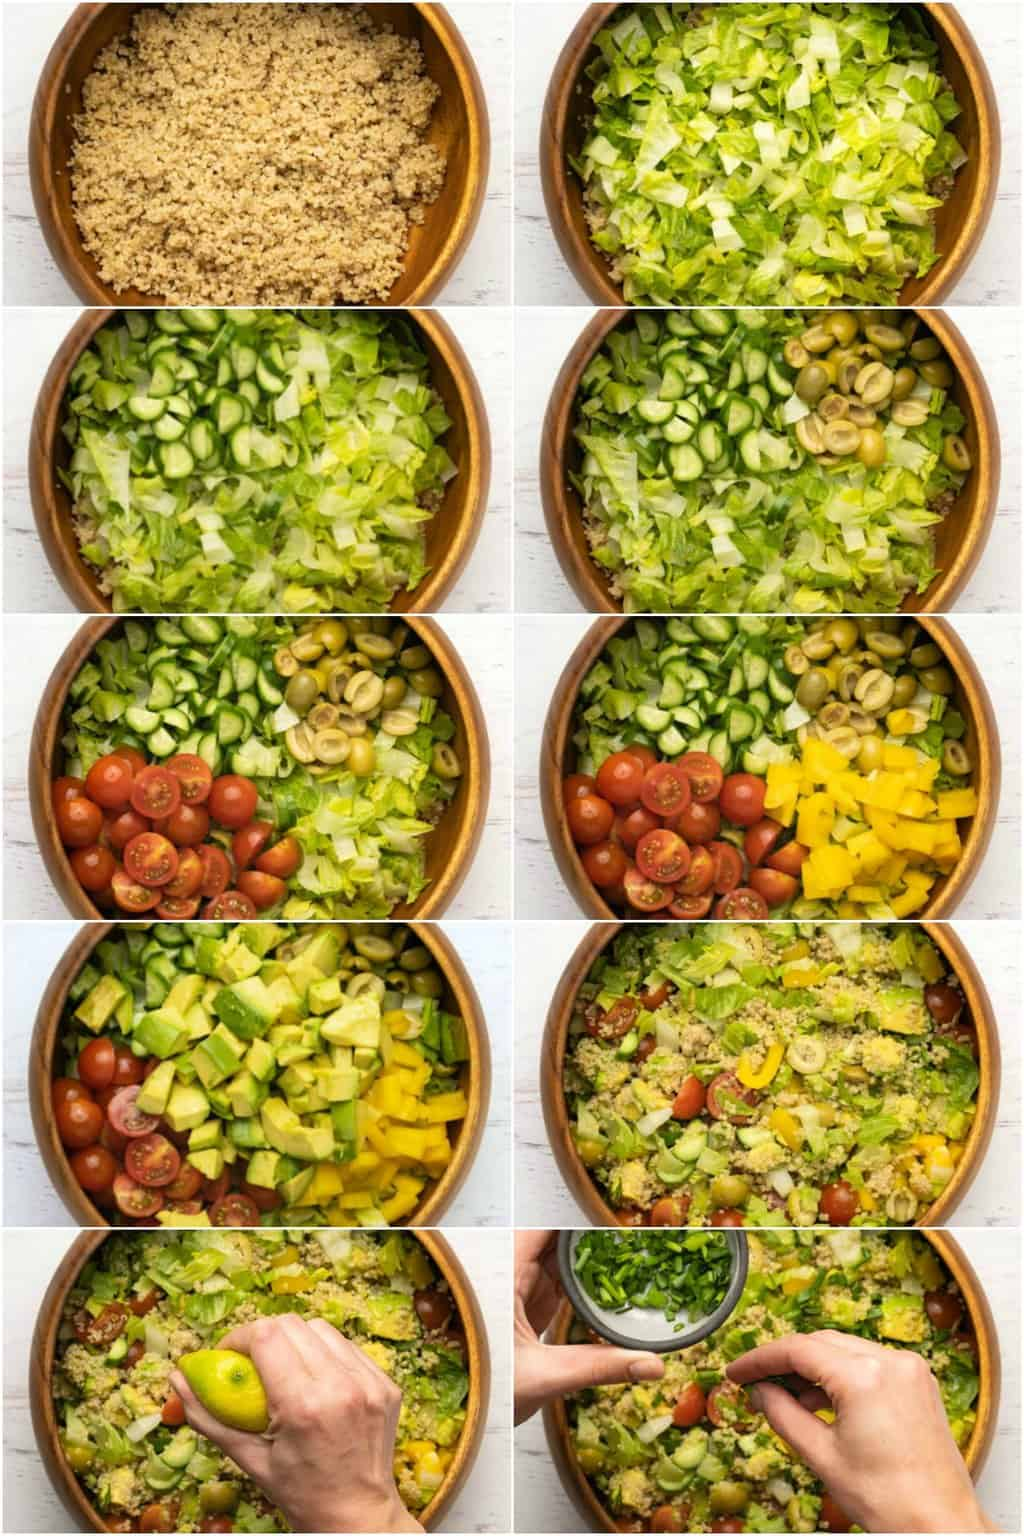 Step by step process photo collage of assembling a vegan quinoa salad.